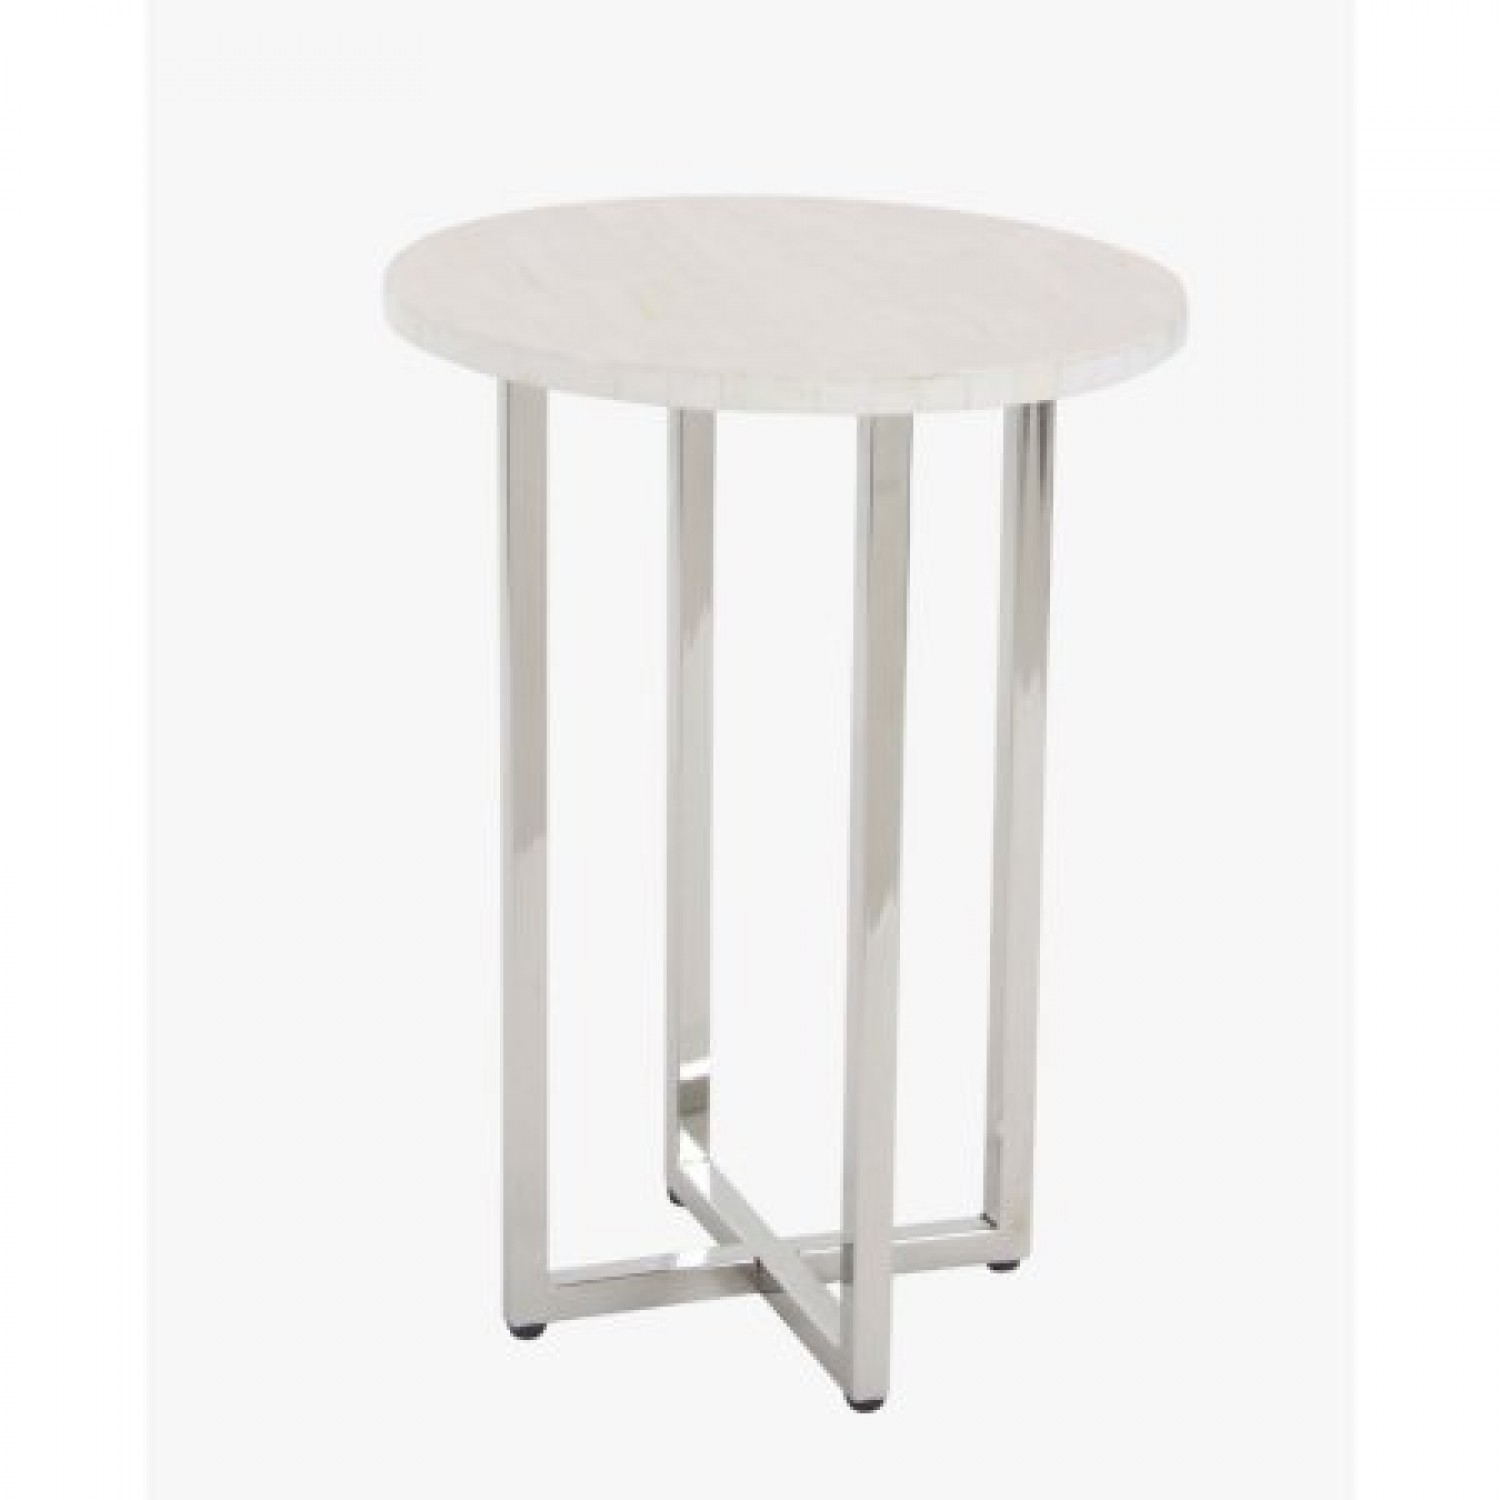 decmode modern inch white polystone round accent table enticing stainless steel ikea patio coastal inspired chandeliers dale tiffany wisteria lamp garden box wood end with glass